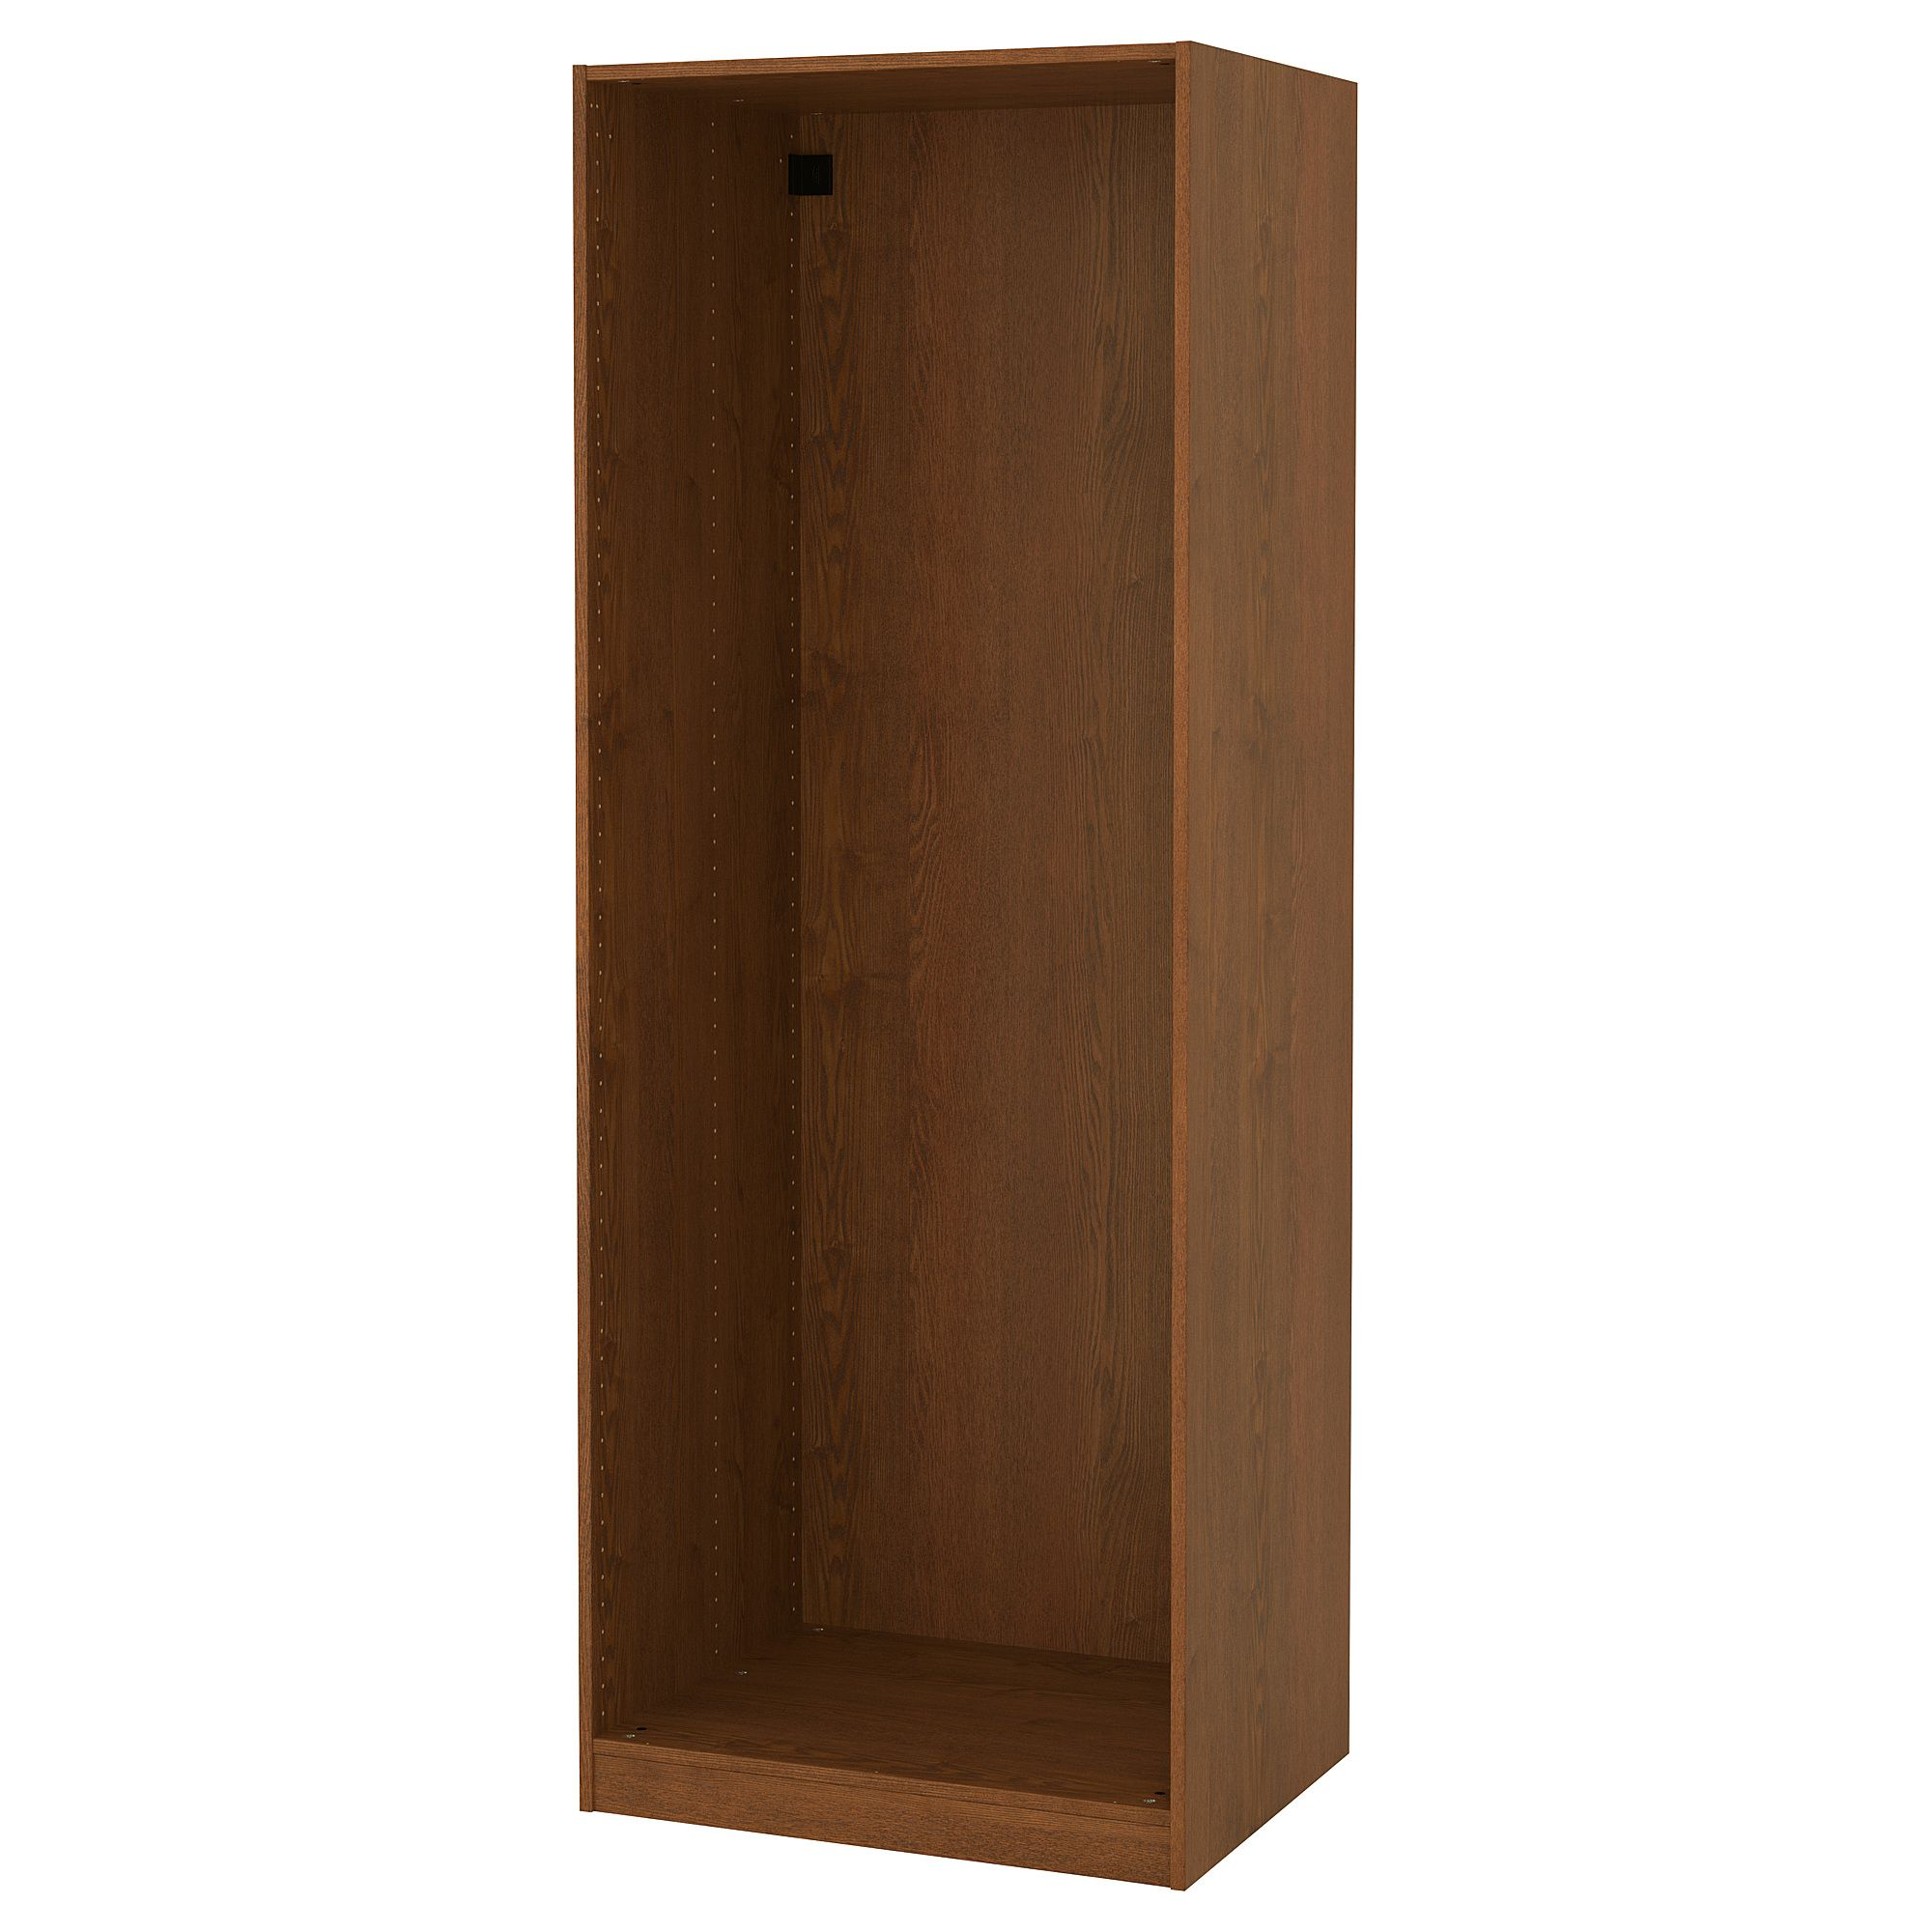 Pax Wardrobe Frame Brown Stained Ash Effect 29 1 2x22 7 8x79 1 8